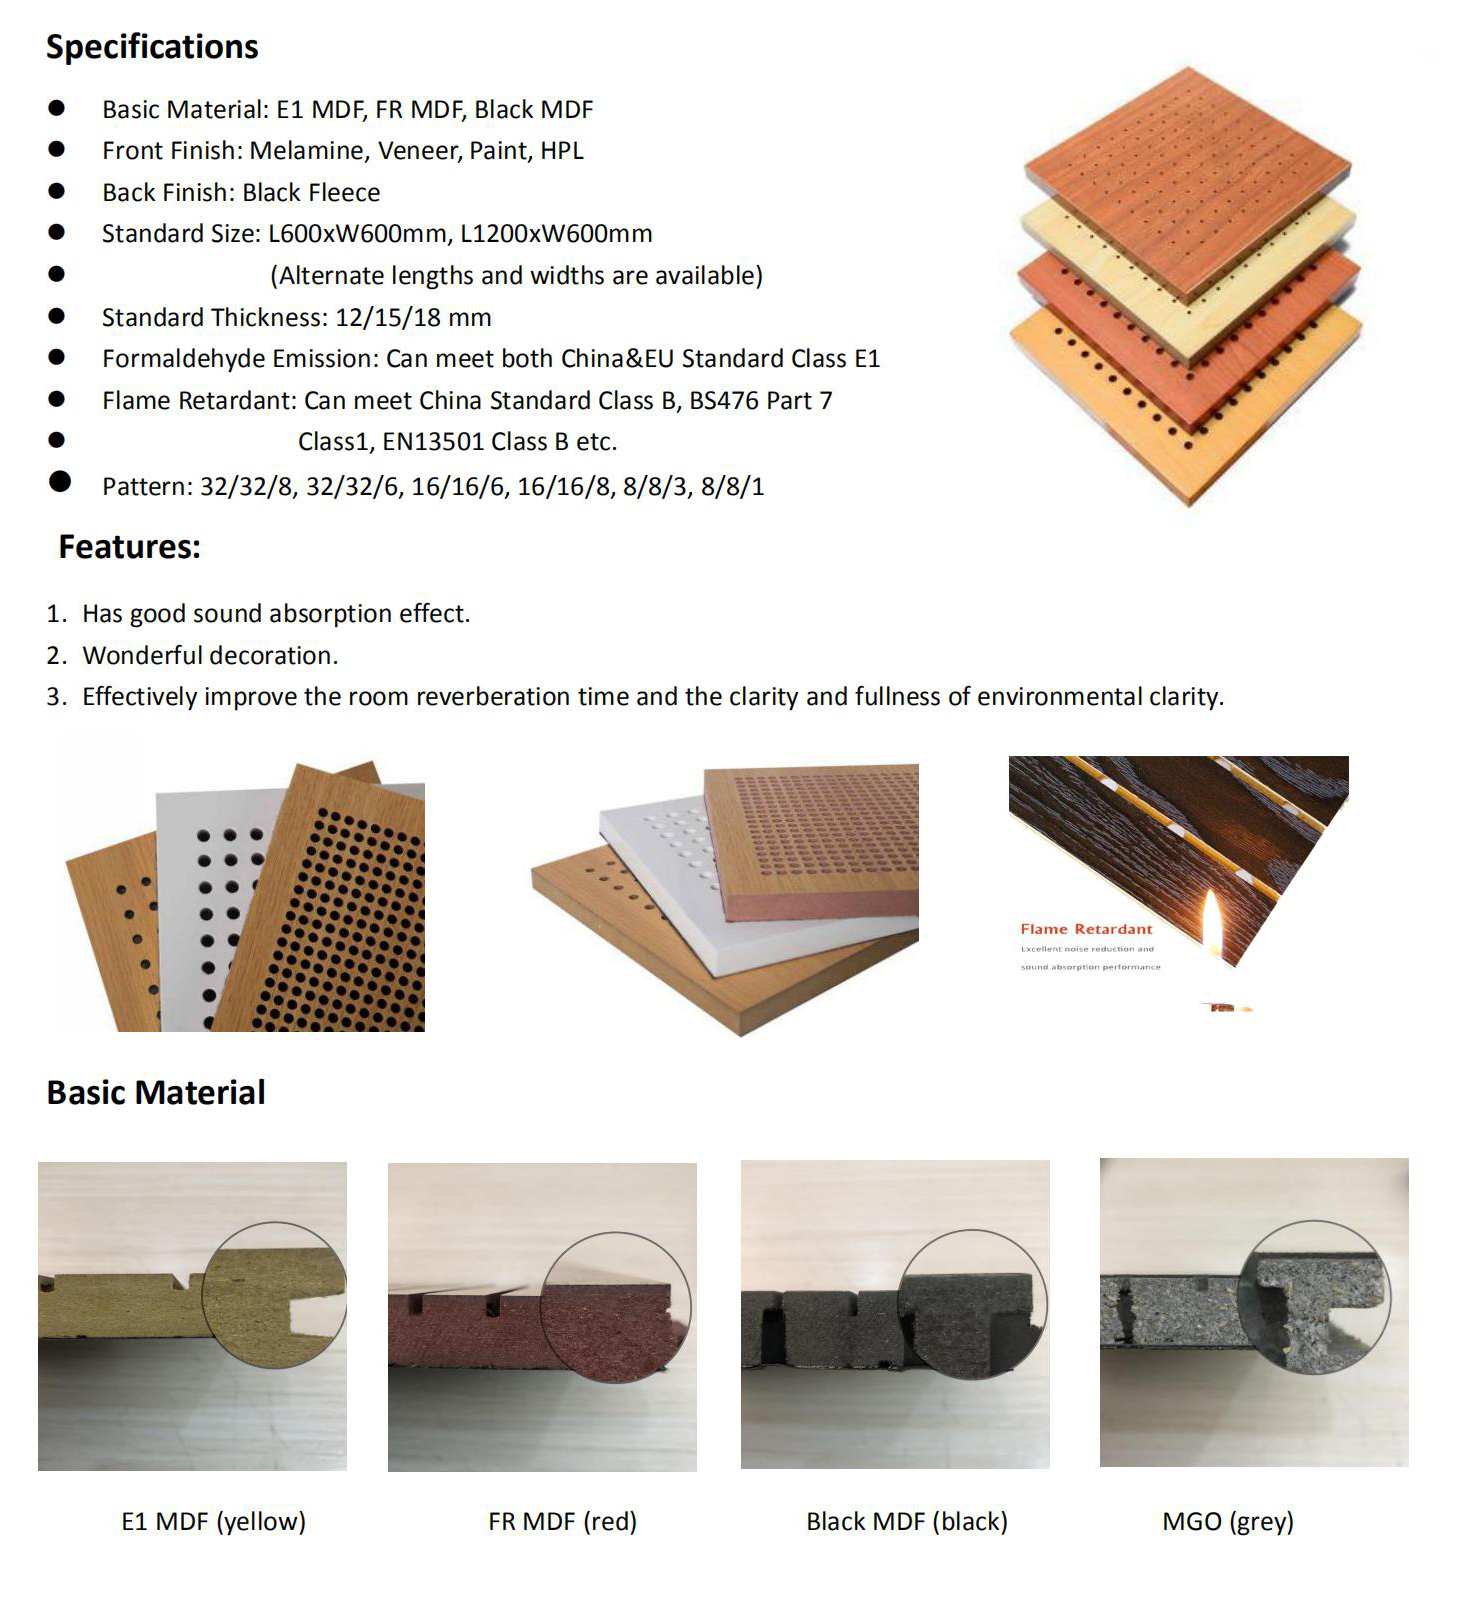 8-8-1 Perforated Wood Acoustic Panel